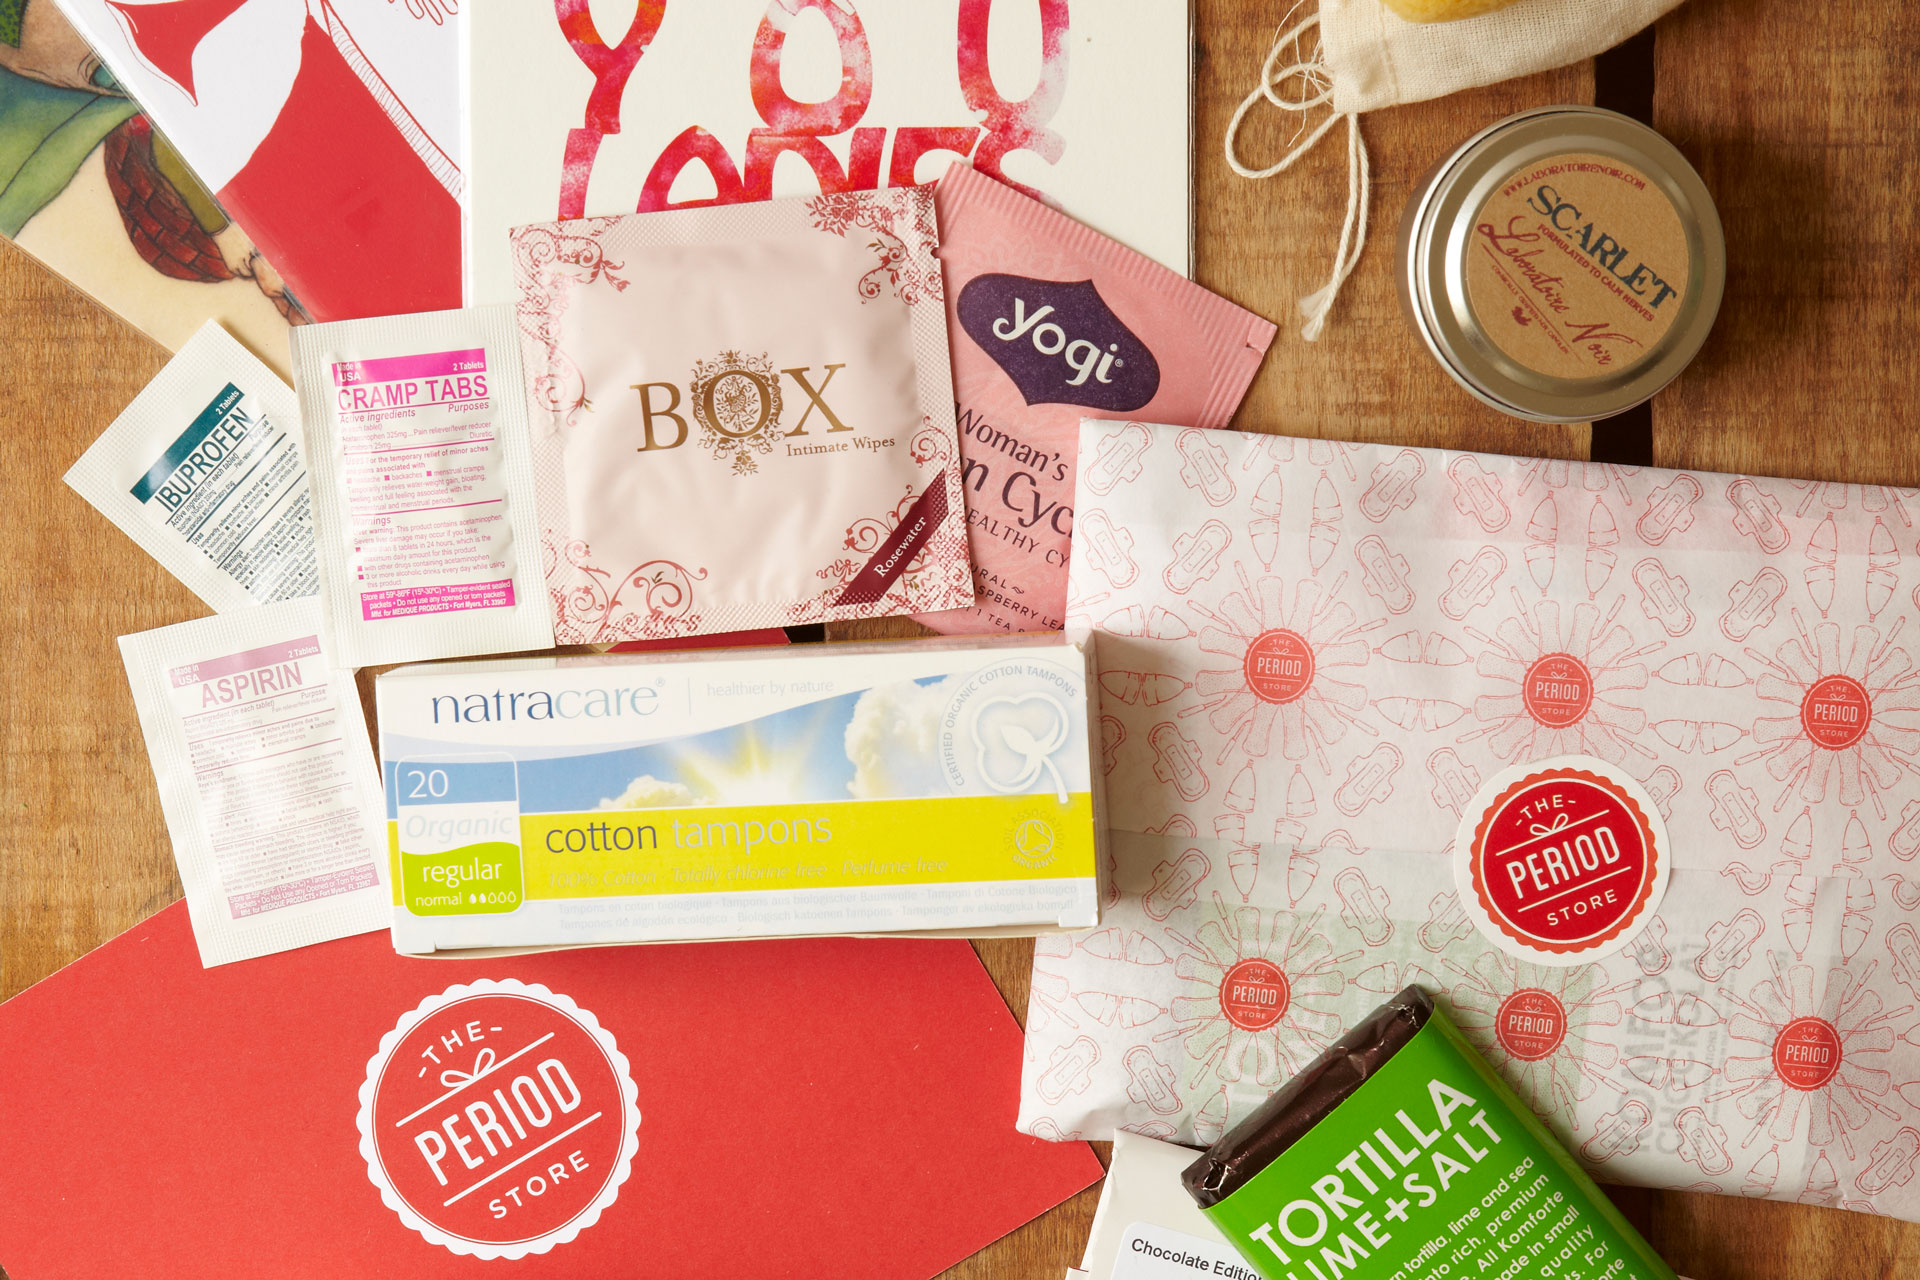 Red box from The Period Store with cotton natracare tampons, teas, chocolate, and more.